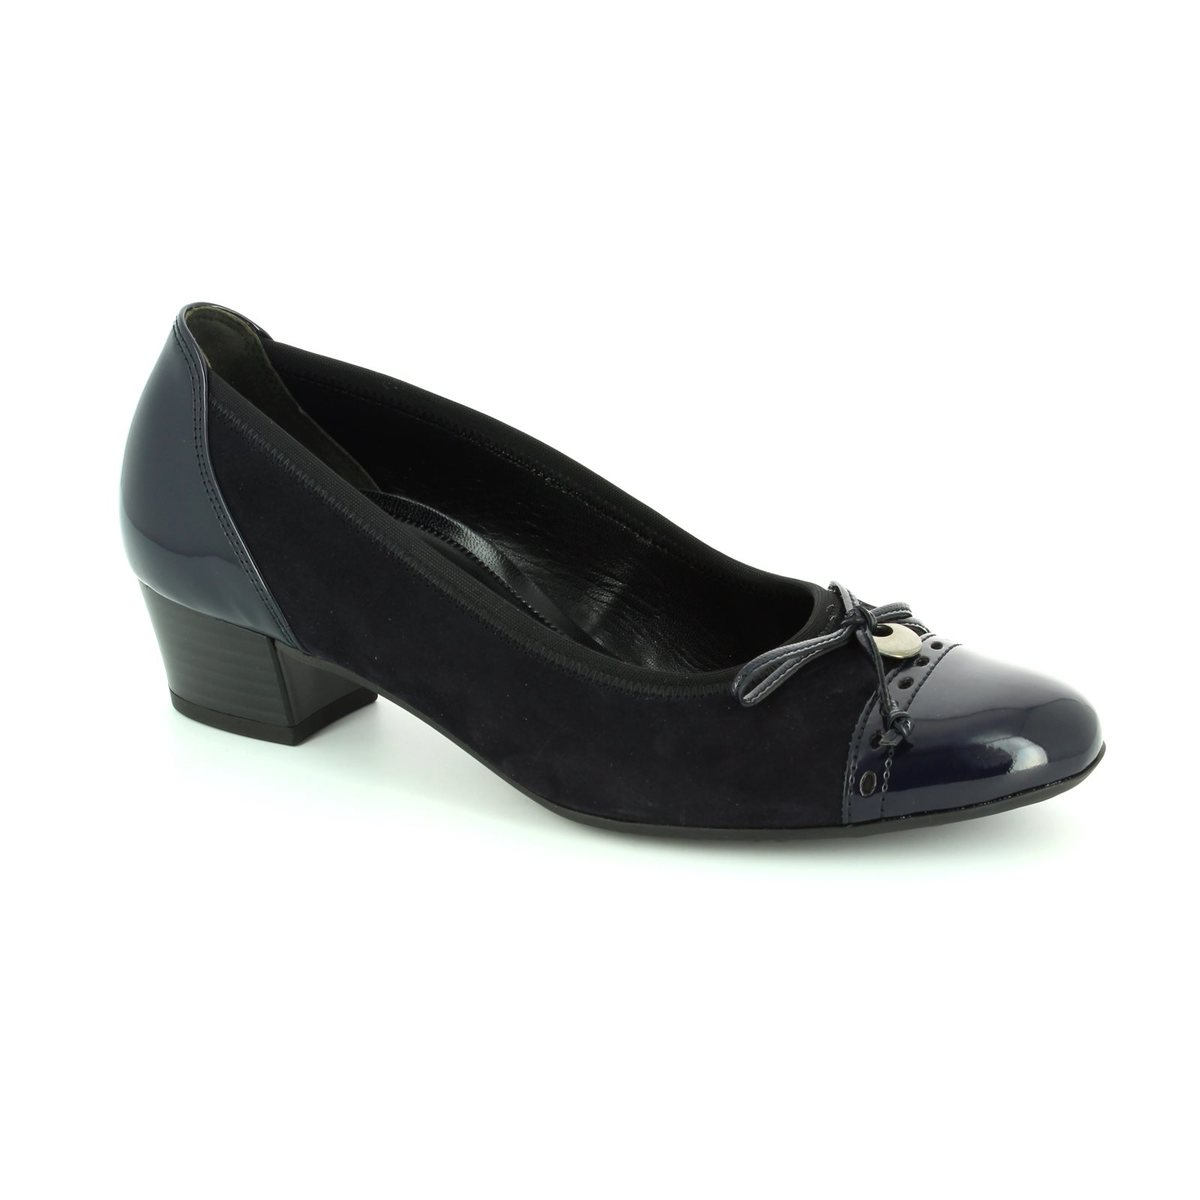 f28b773247f Gabor Heeled Shoes - Navy patent-suede - 52.203.26 ISLAY